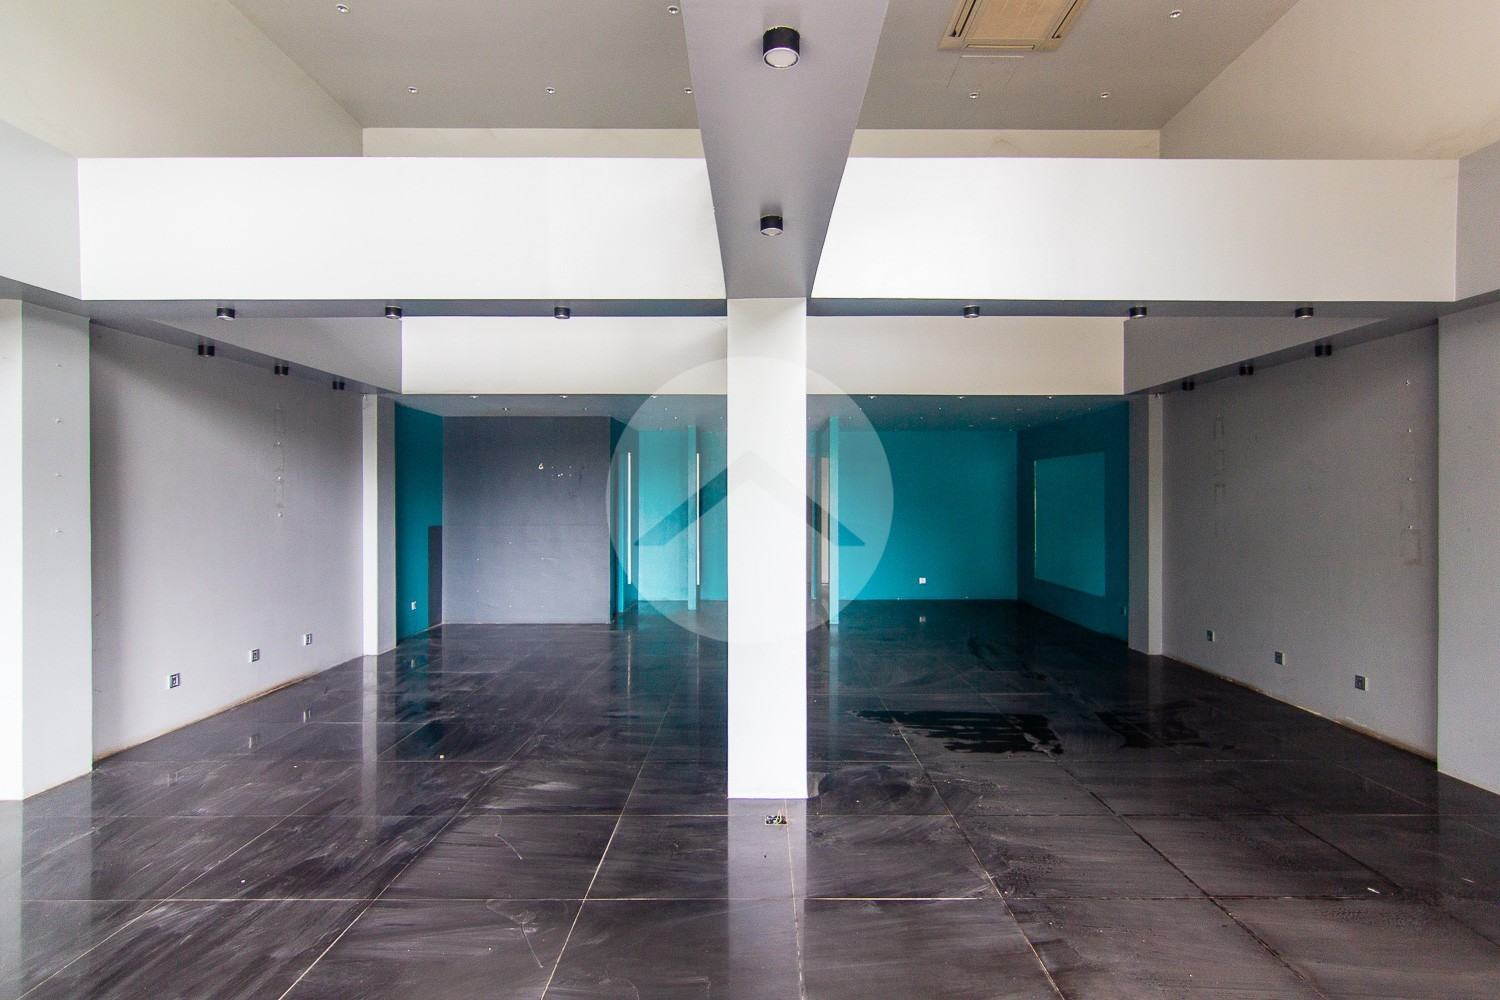 100 Sqm Commercial Space For Rent - Svay Dangkum, Siem Reap